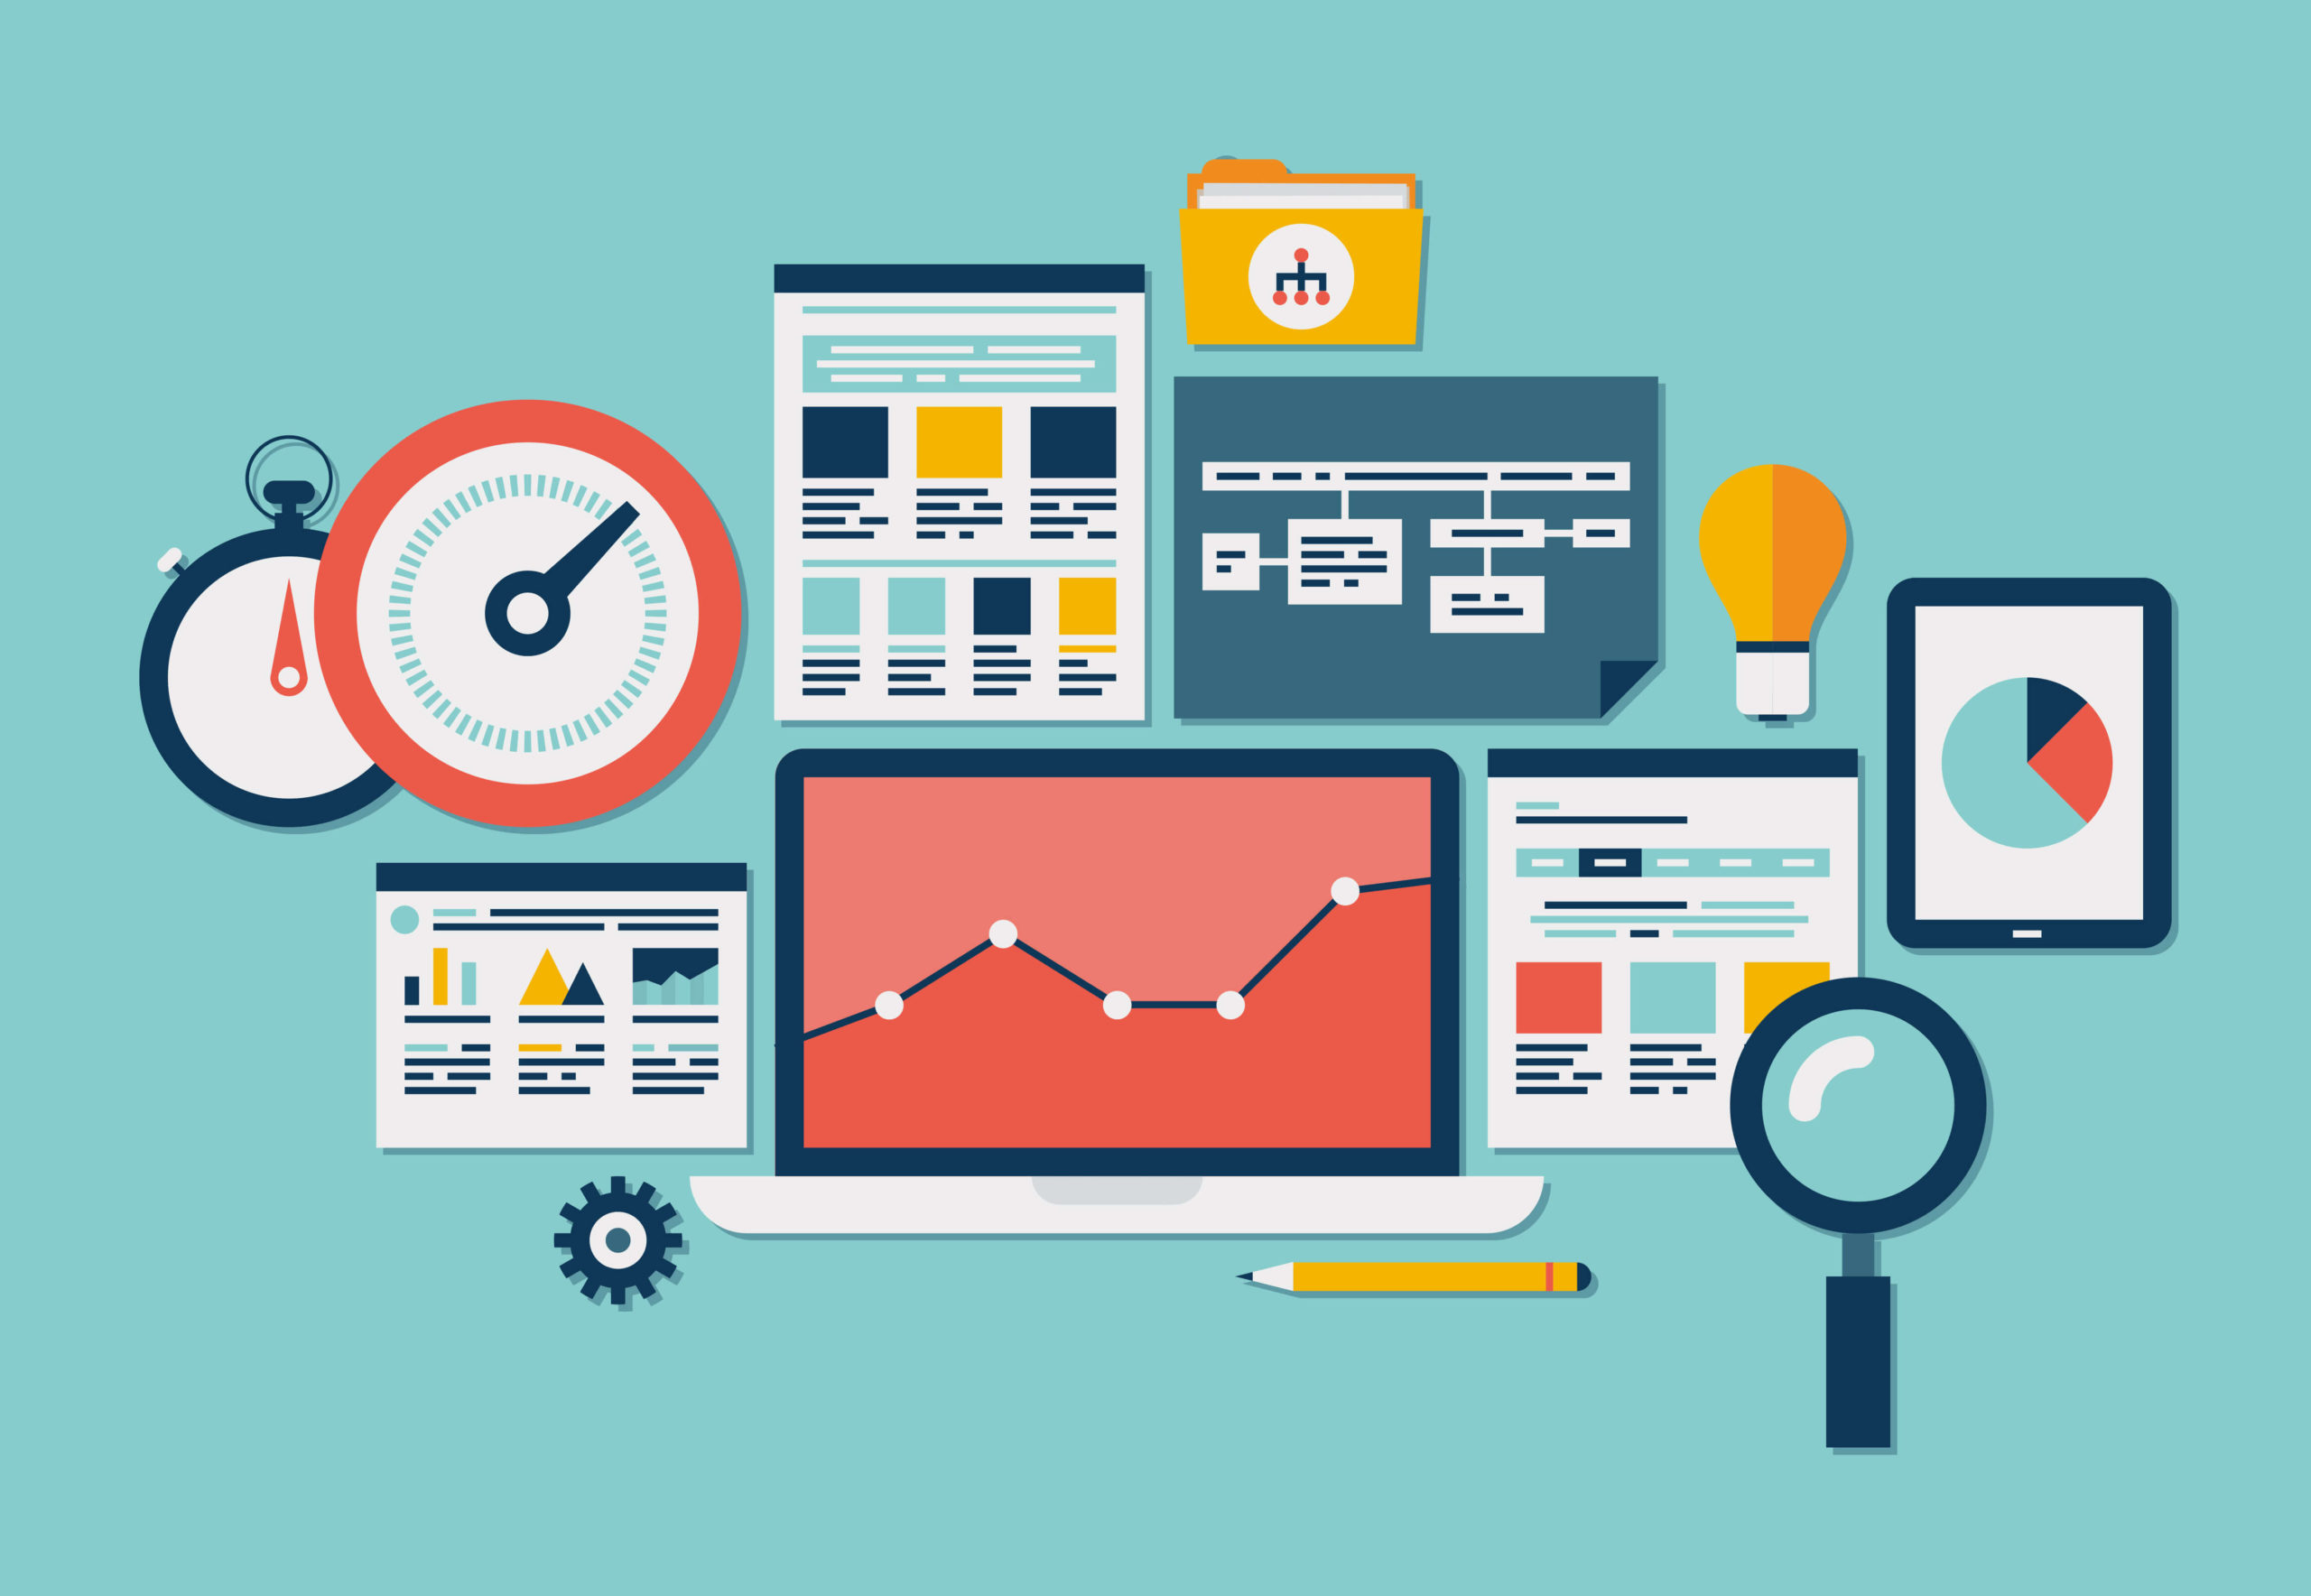 Site structure that will enhance SEO